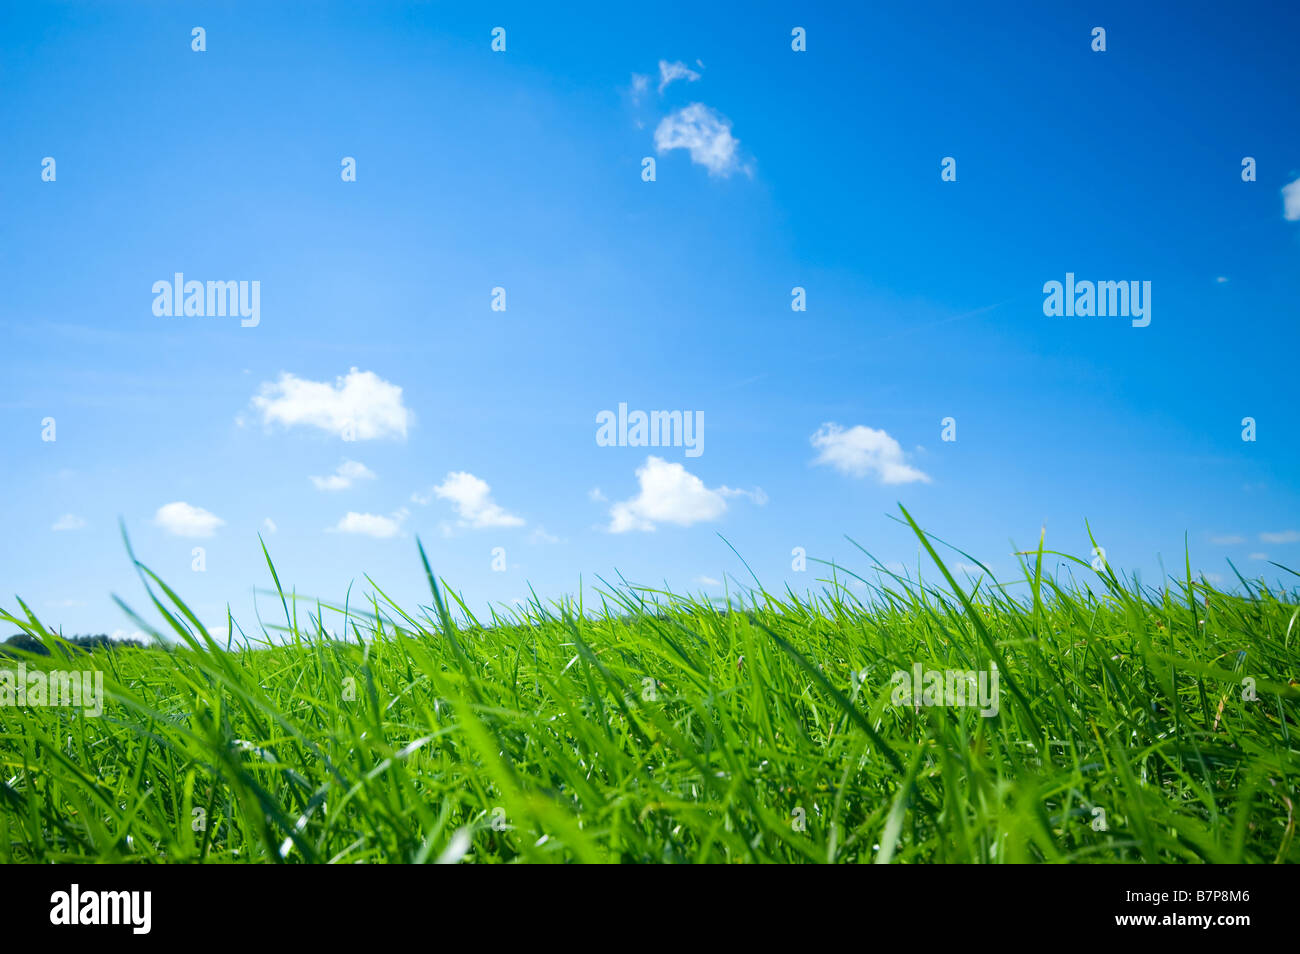 fresh green grass with bright blue sky background - Stock Image